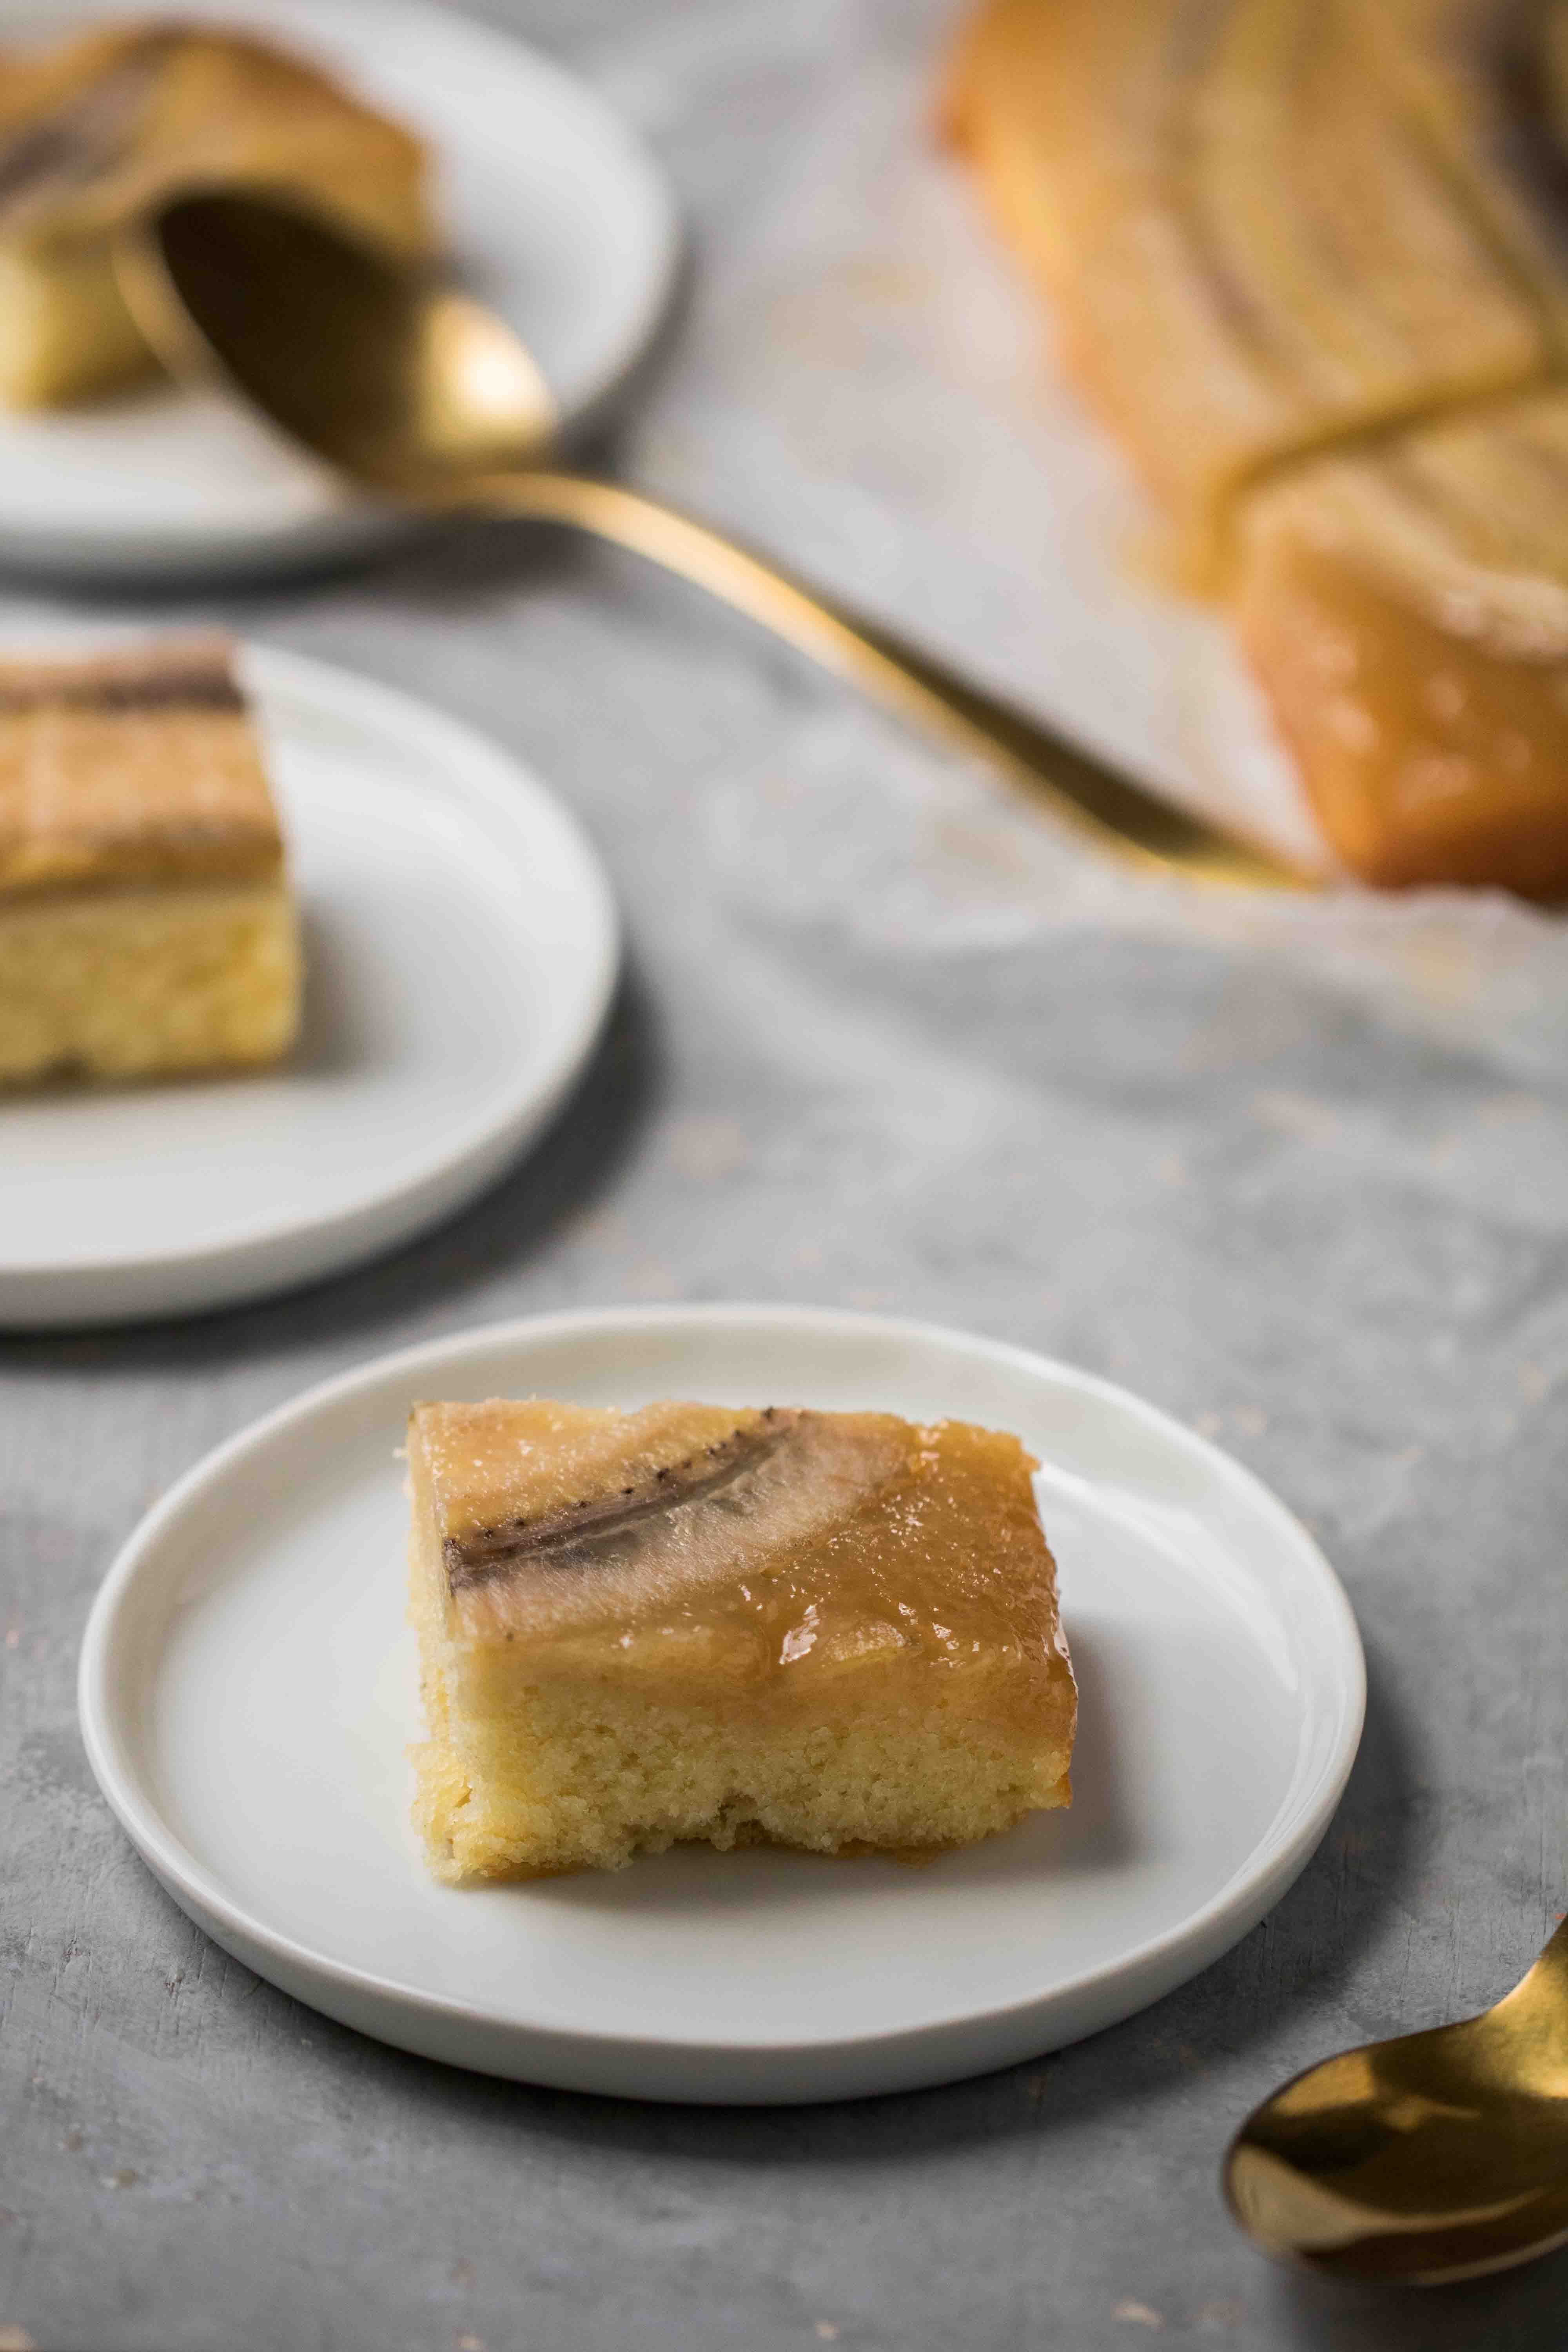 The most buttery upside down banana cake